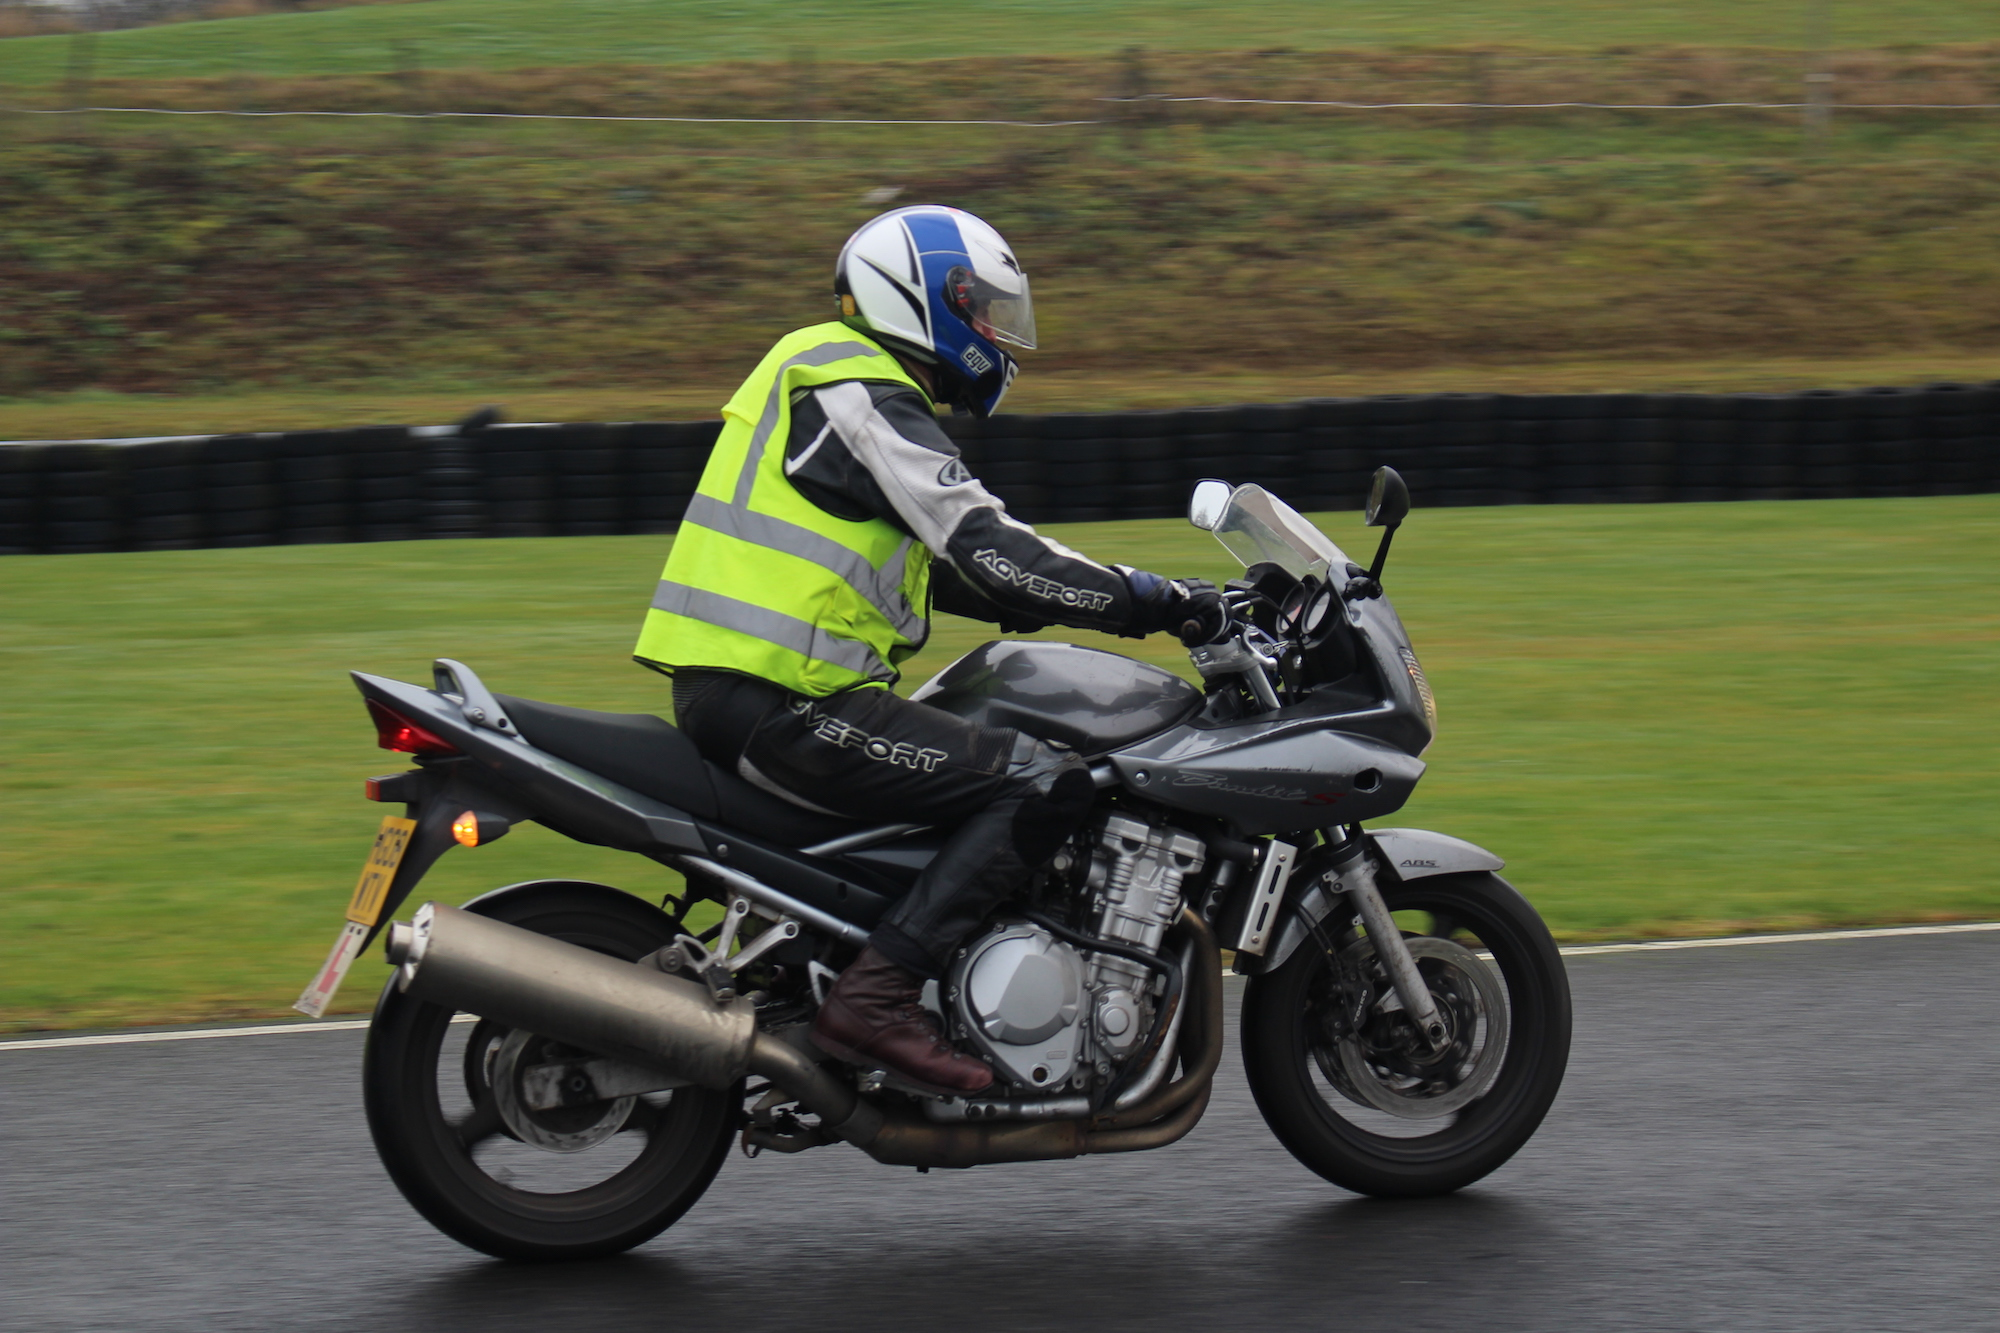 Motorcycle training in Leicester, Nottingham, Loughborough